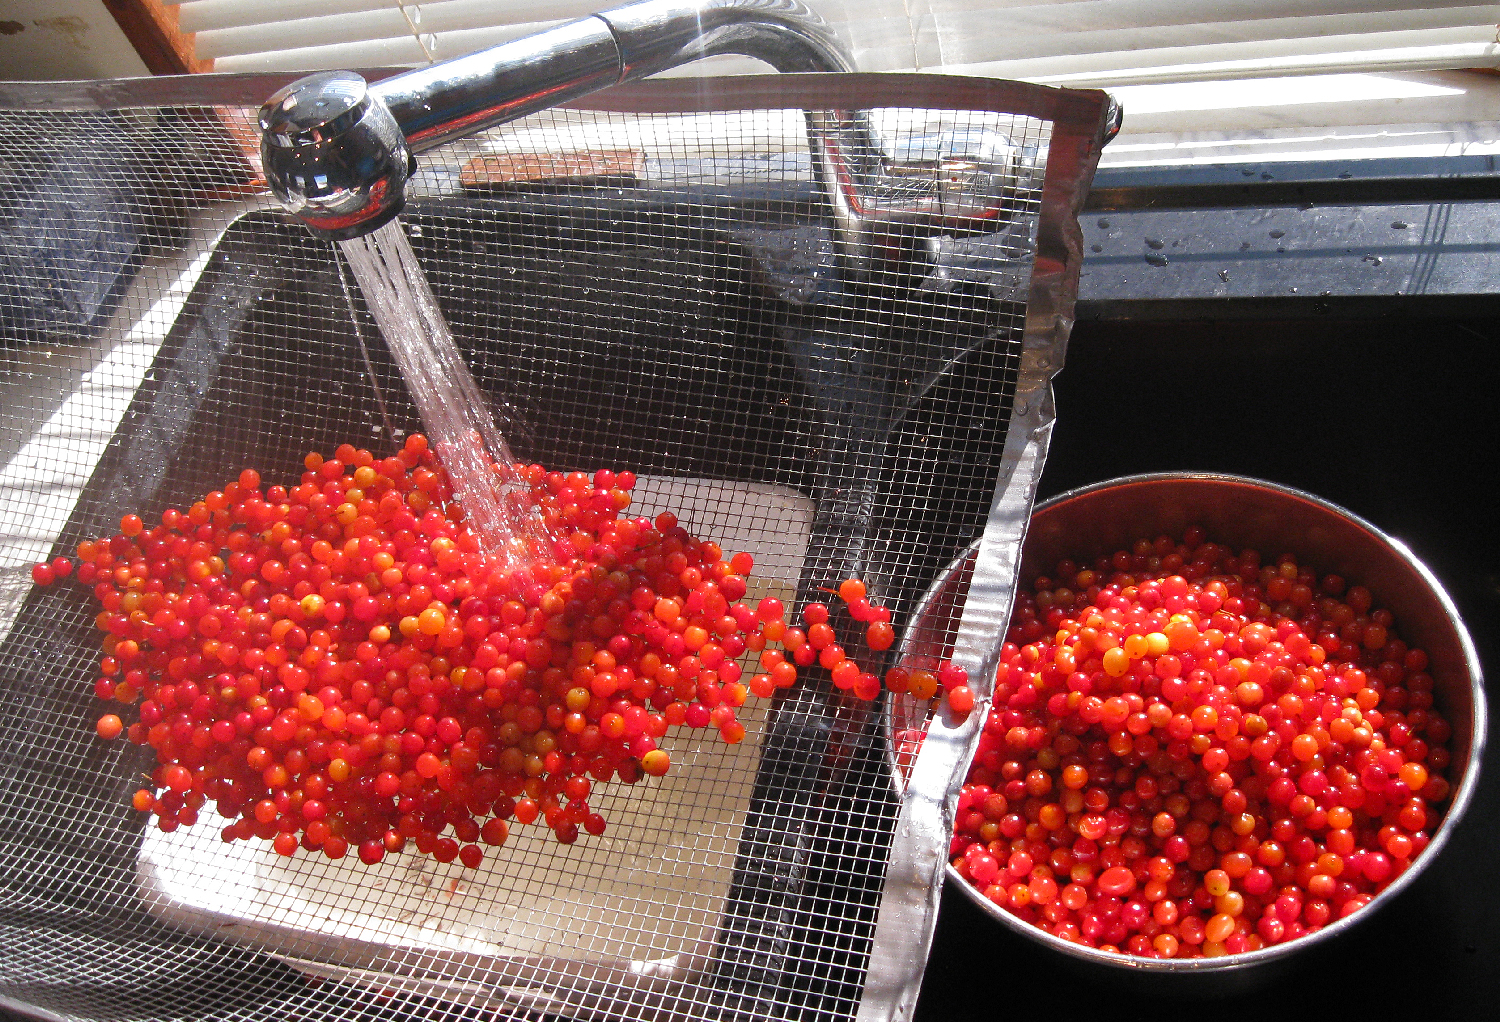 Cleaning  highbush cranberries.